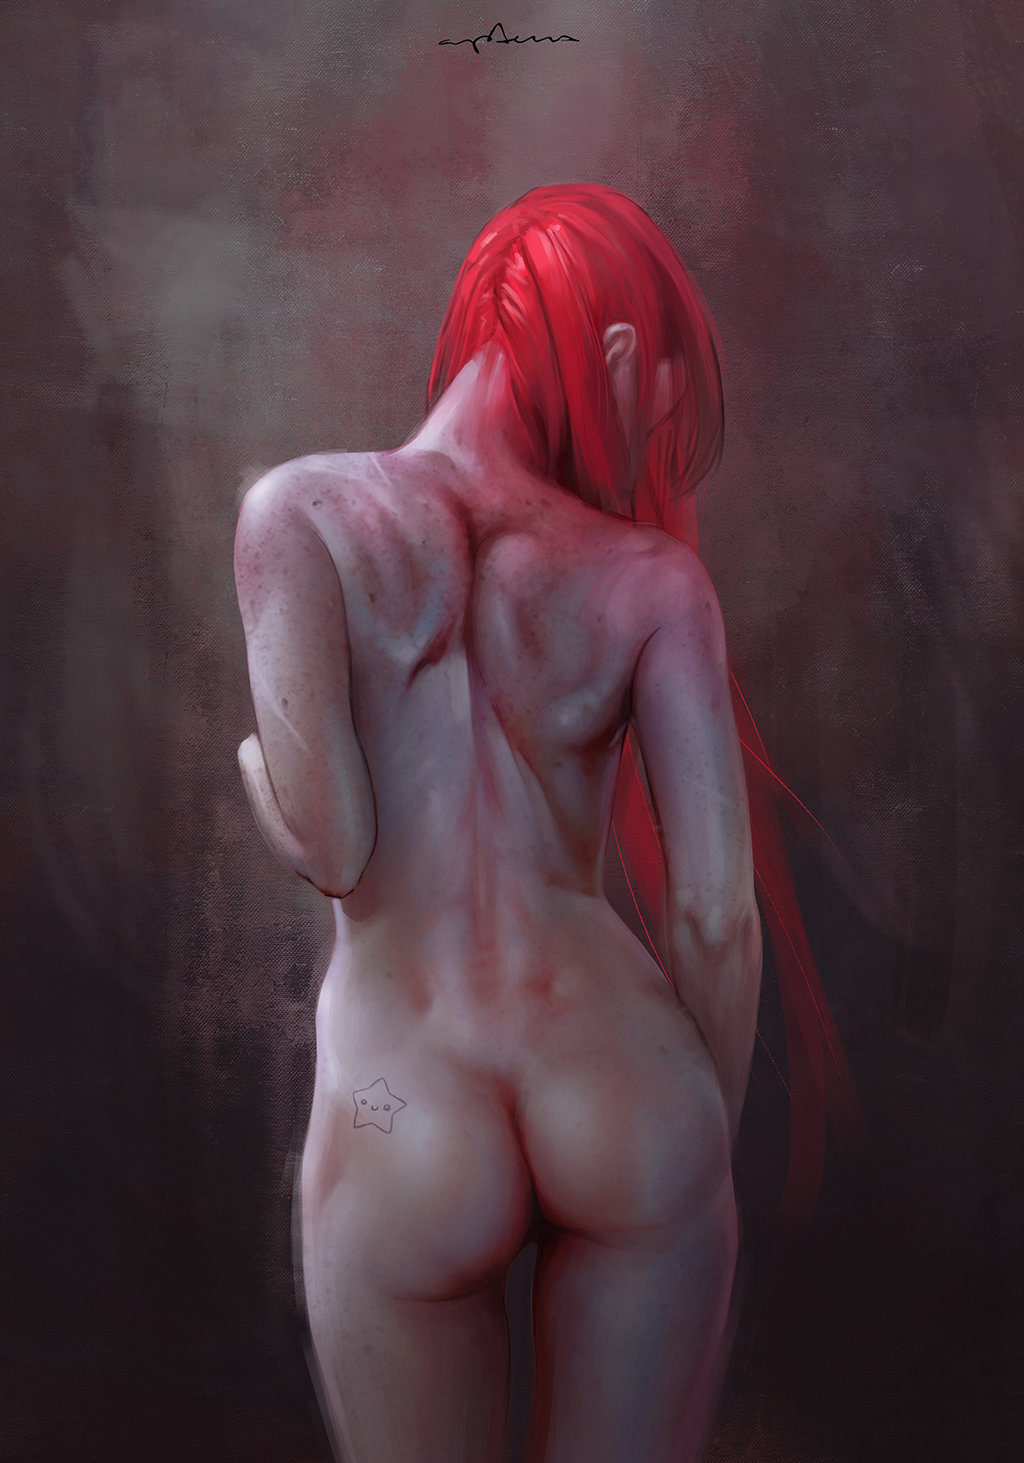 Sabbas Apterus illustration woman from behind